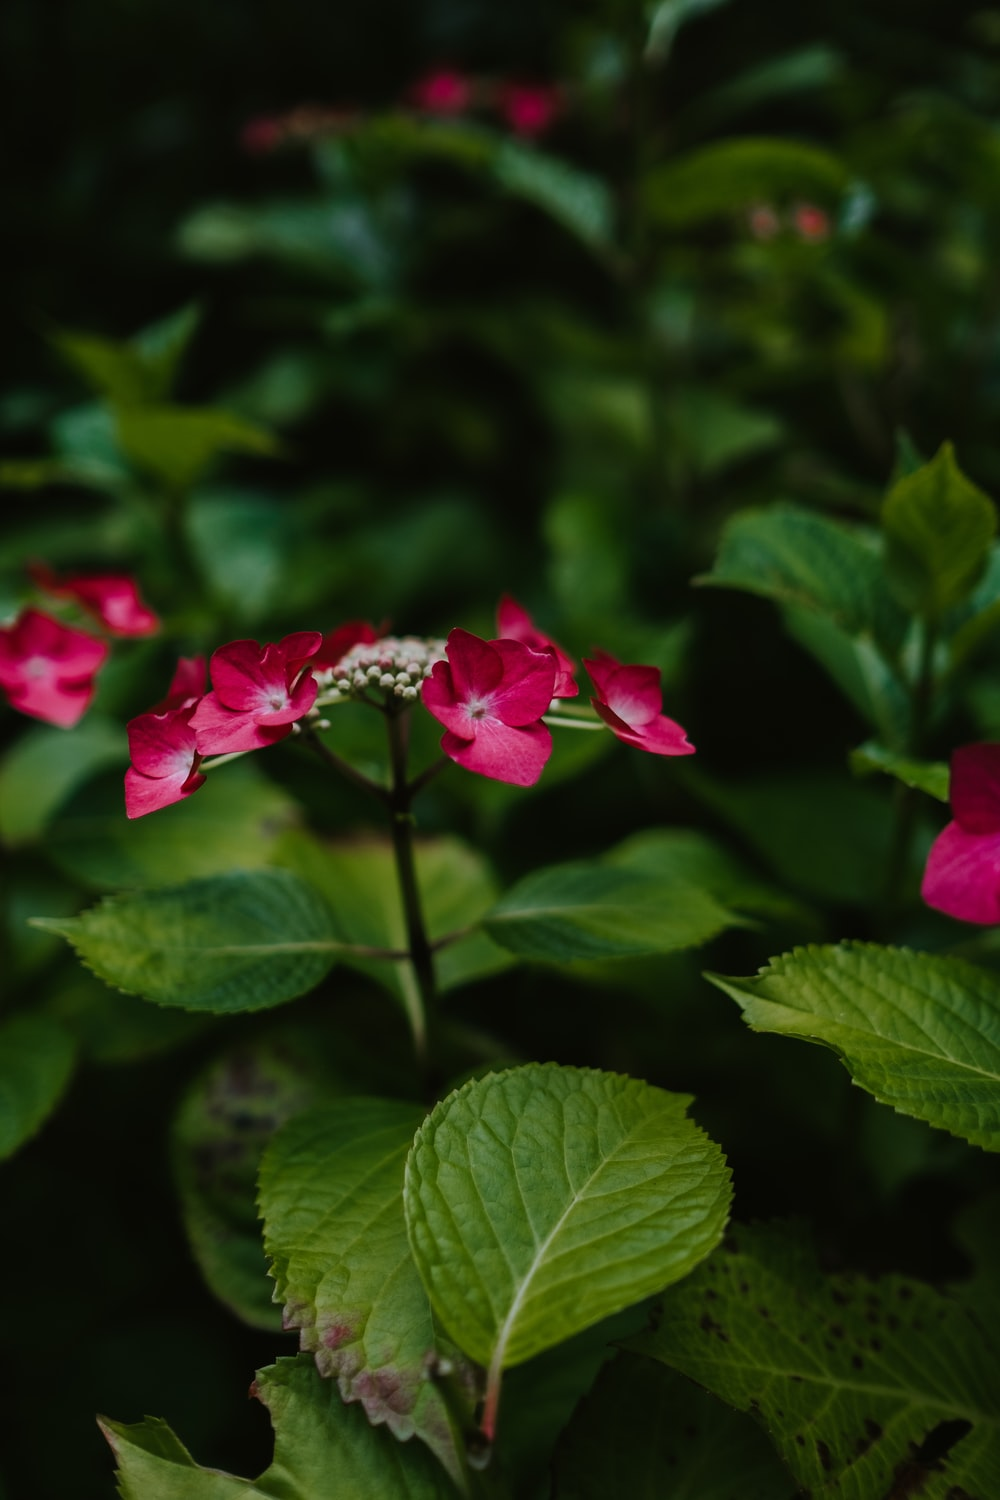 red flowered plant